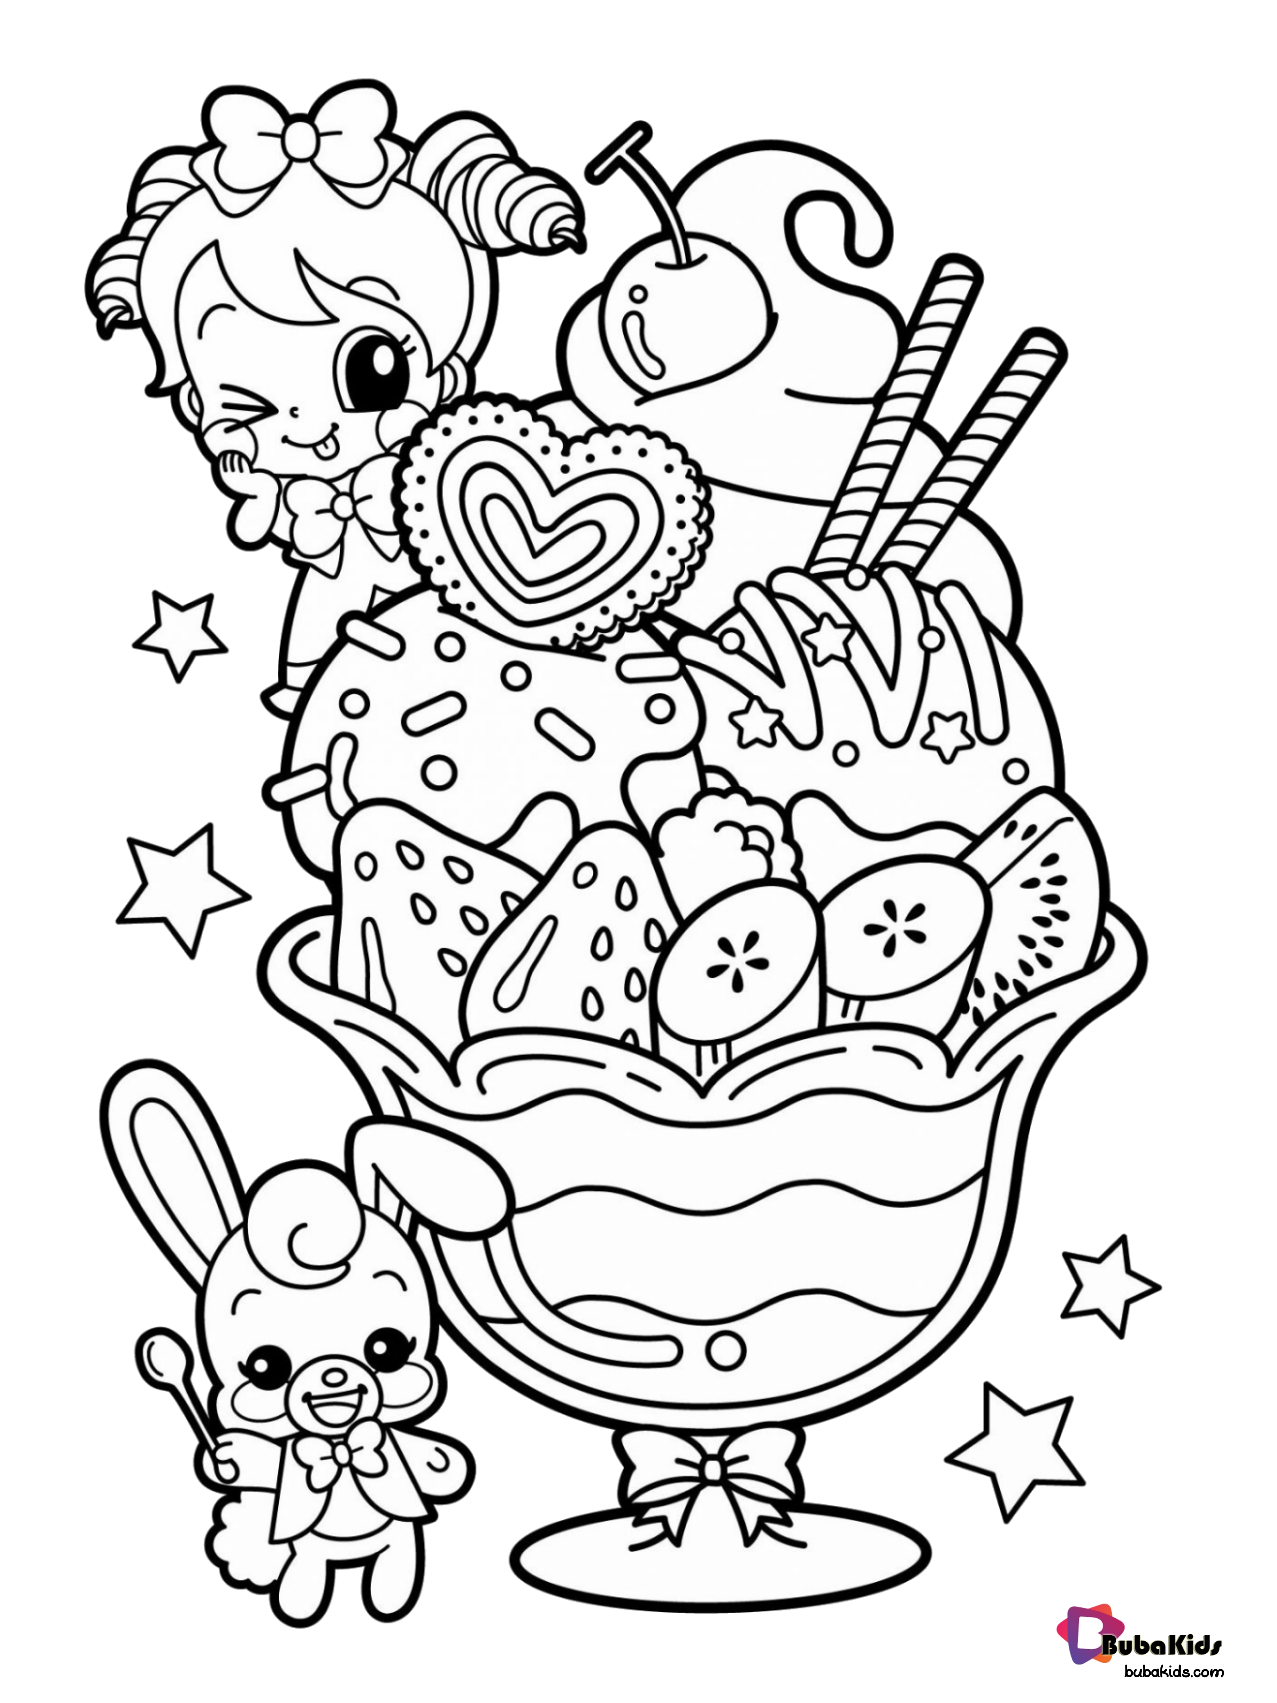 funny food coloring pages 28 besten windowcolor bilder auf pinterest ausmalen food coloring pages funny